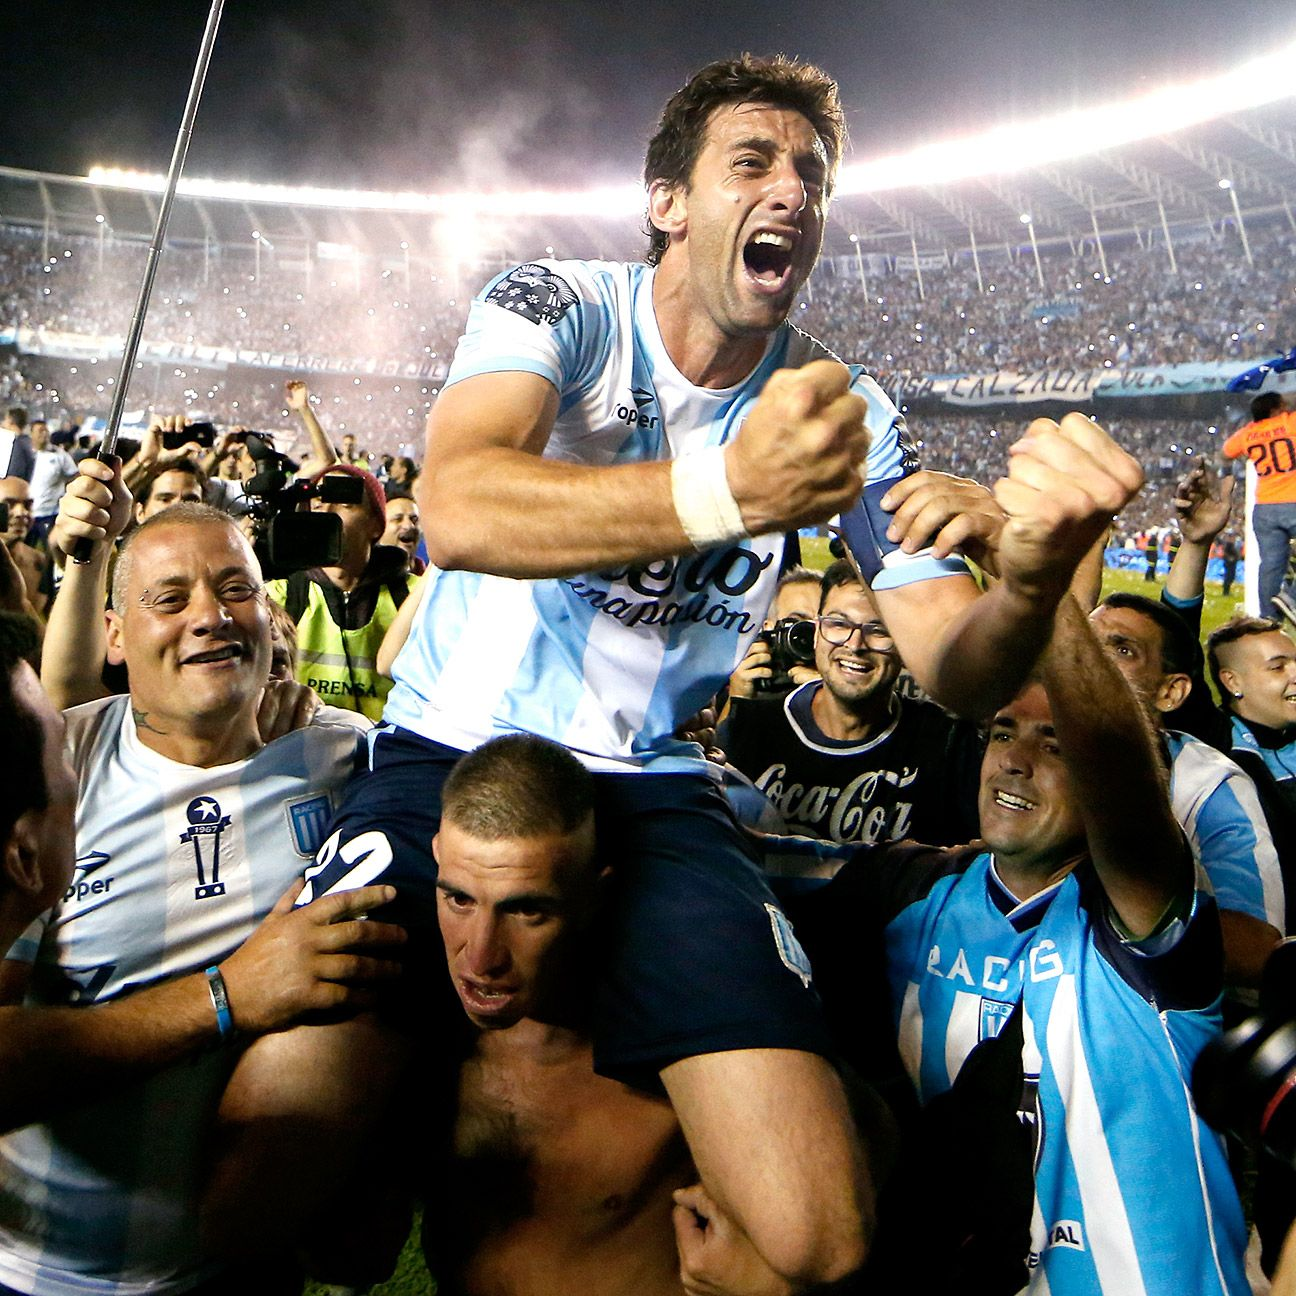 In Diego Milito's first season back in Argentina the former Inter Milan star led Racing to the title.